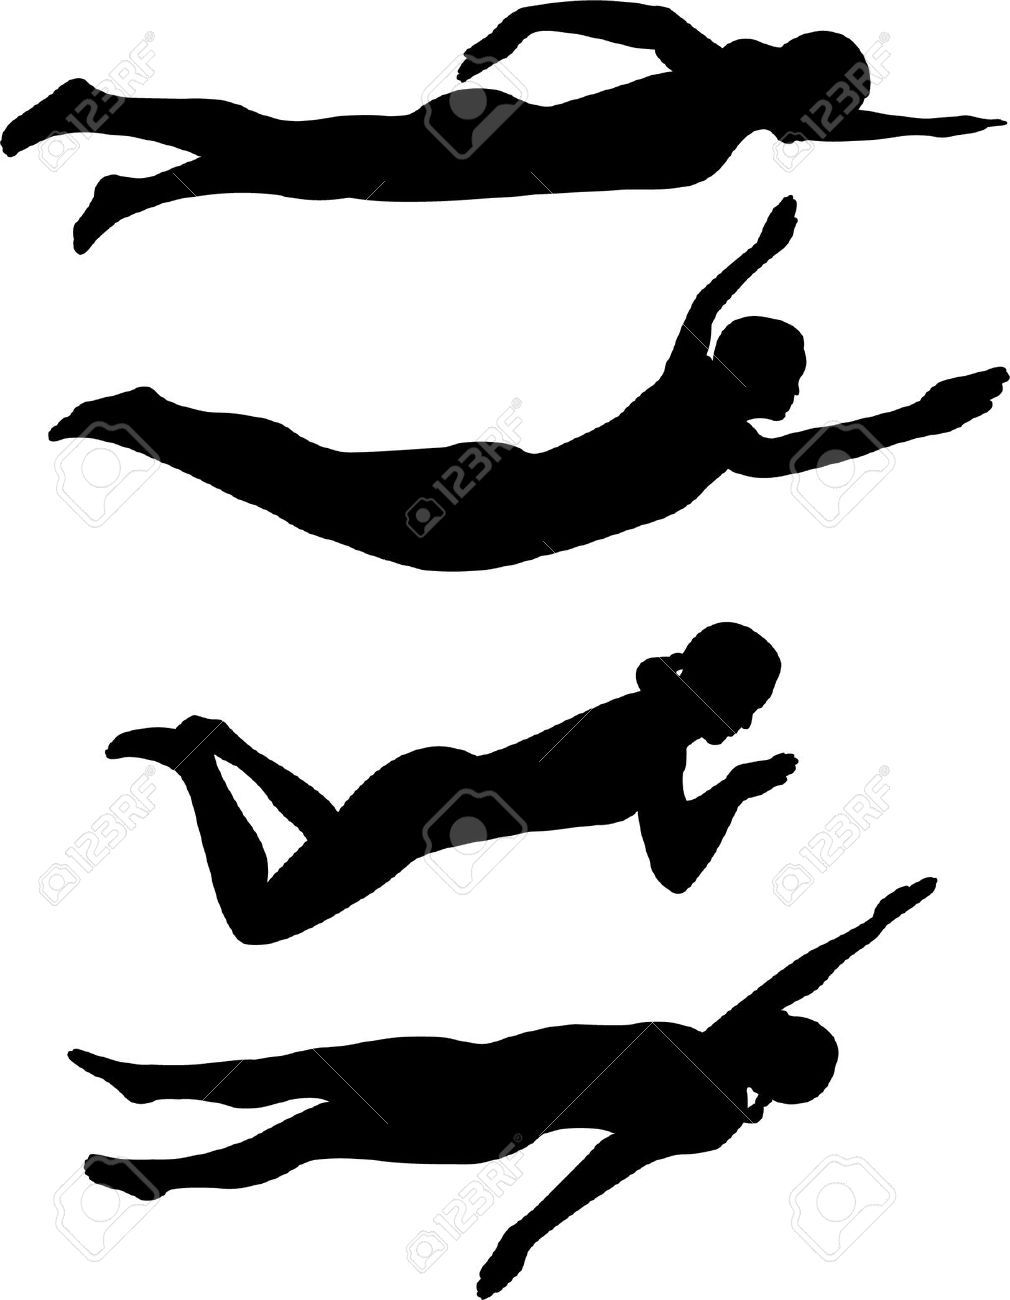 medium resolution of image result for competitive swimming clip art silhouette